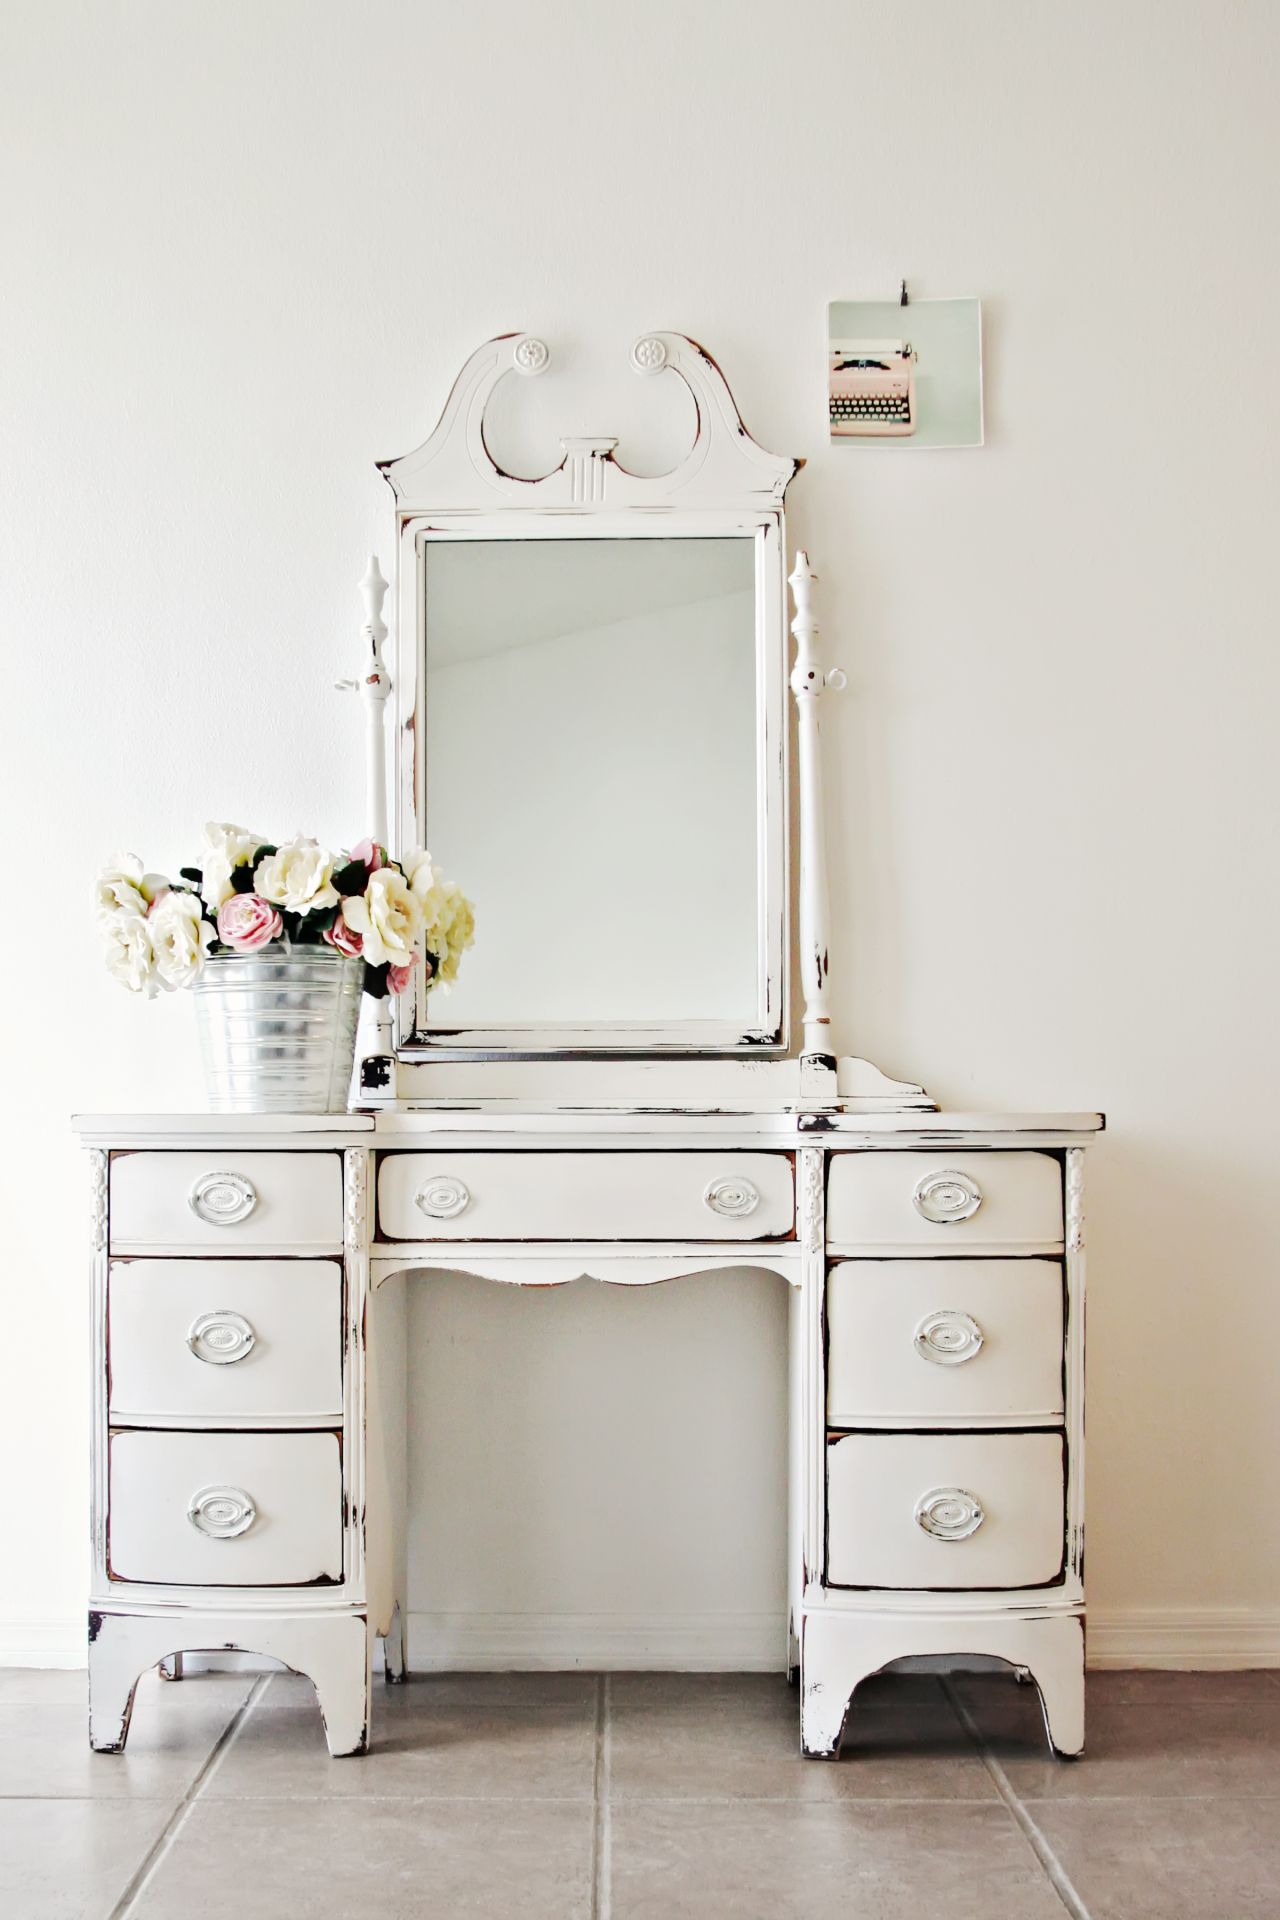 Bedroom Set With Vanity Distressed White Vintage Vanity Vintage Interiors